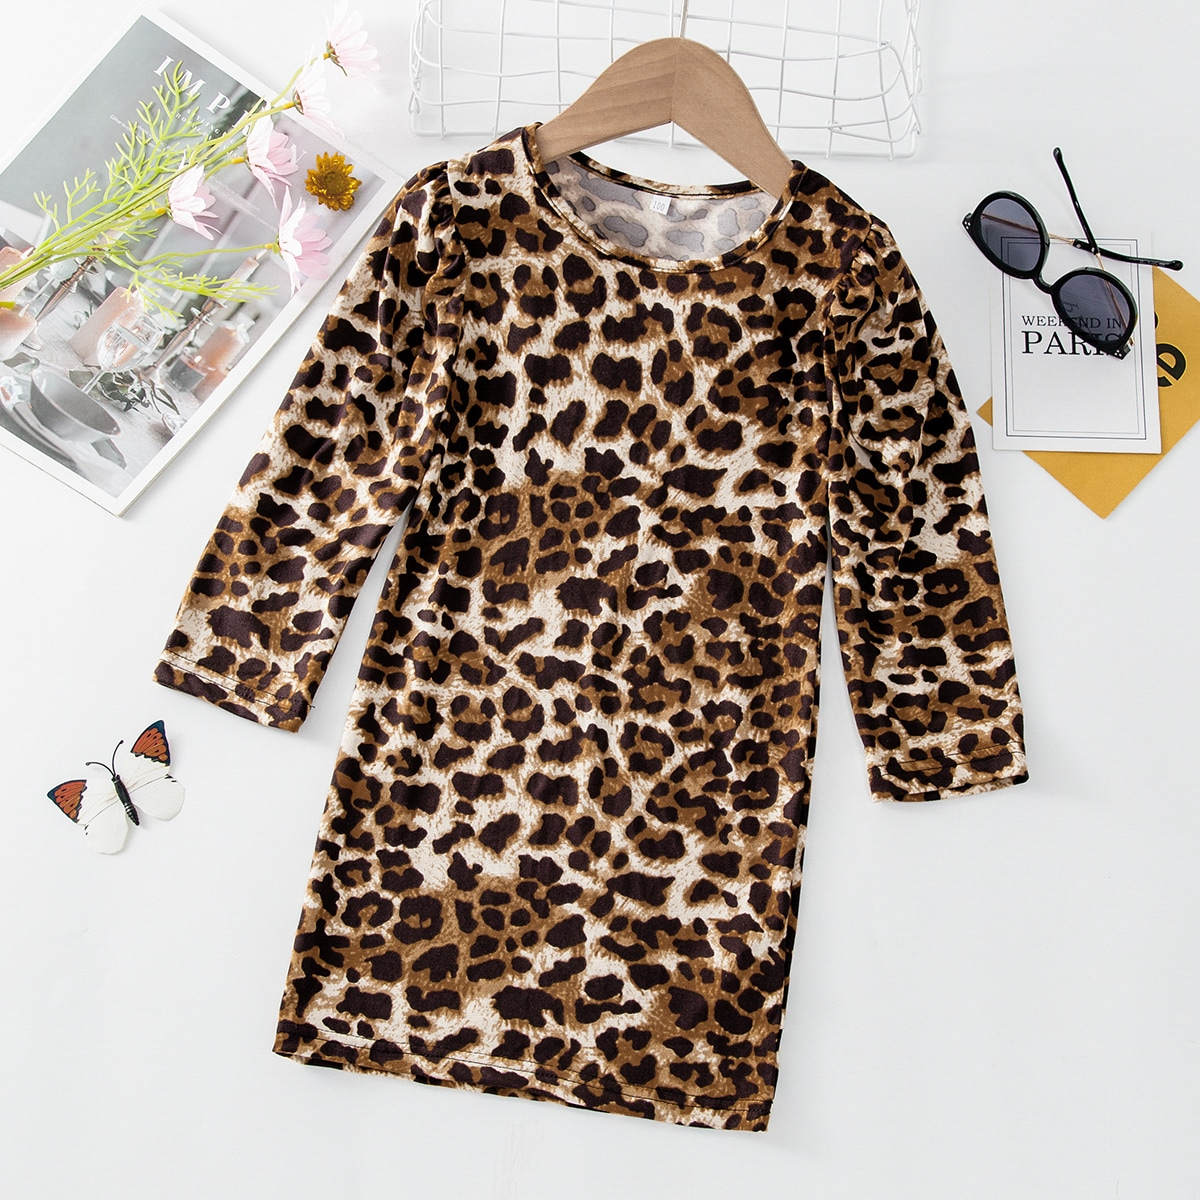 Toddler Girls Leopard Print Tee Dress, SHEIN  - buy with discount